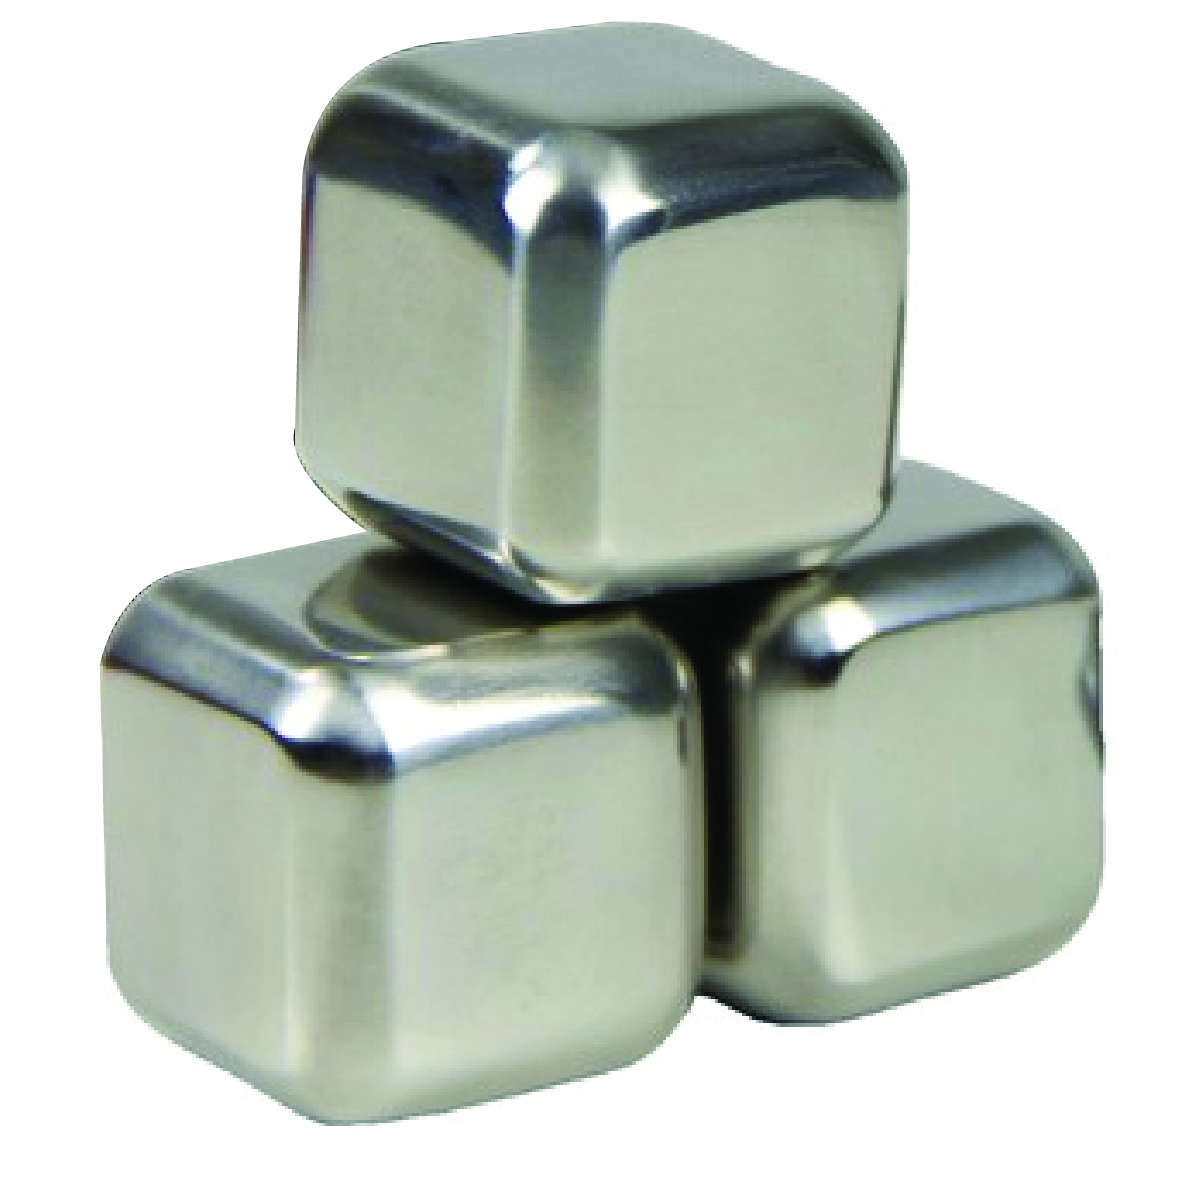 Stainless Steel Stainless Steel Beverage Cubes